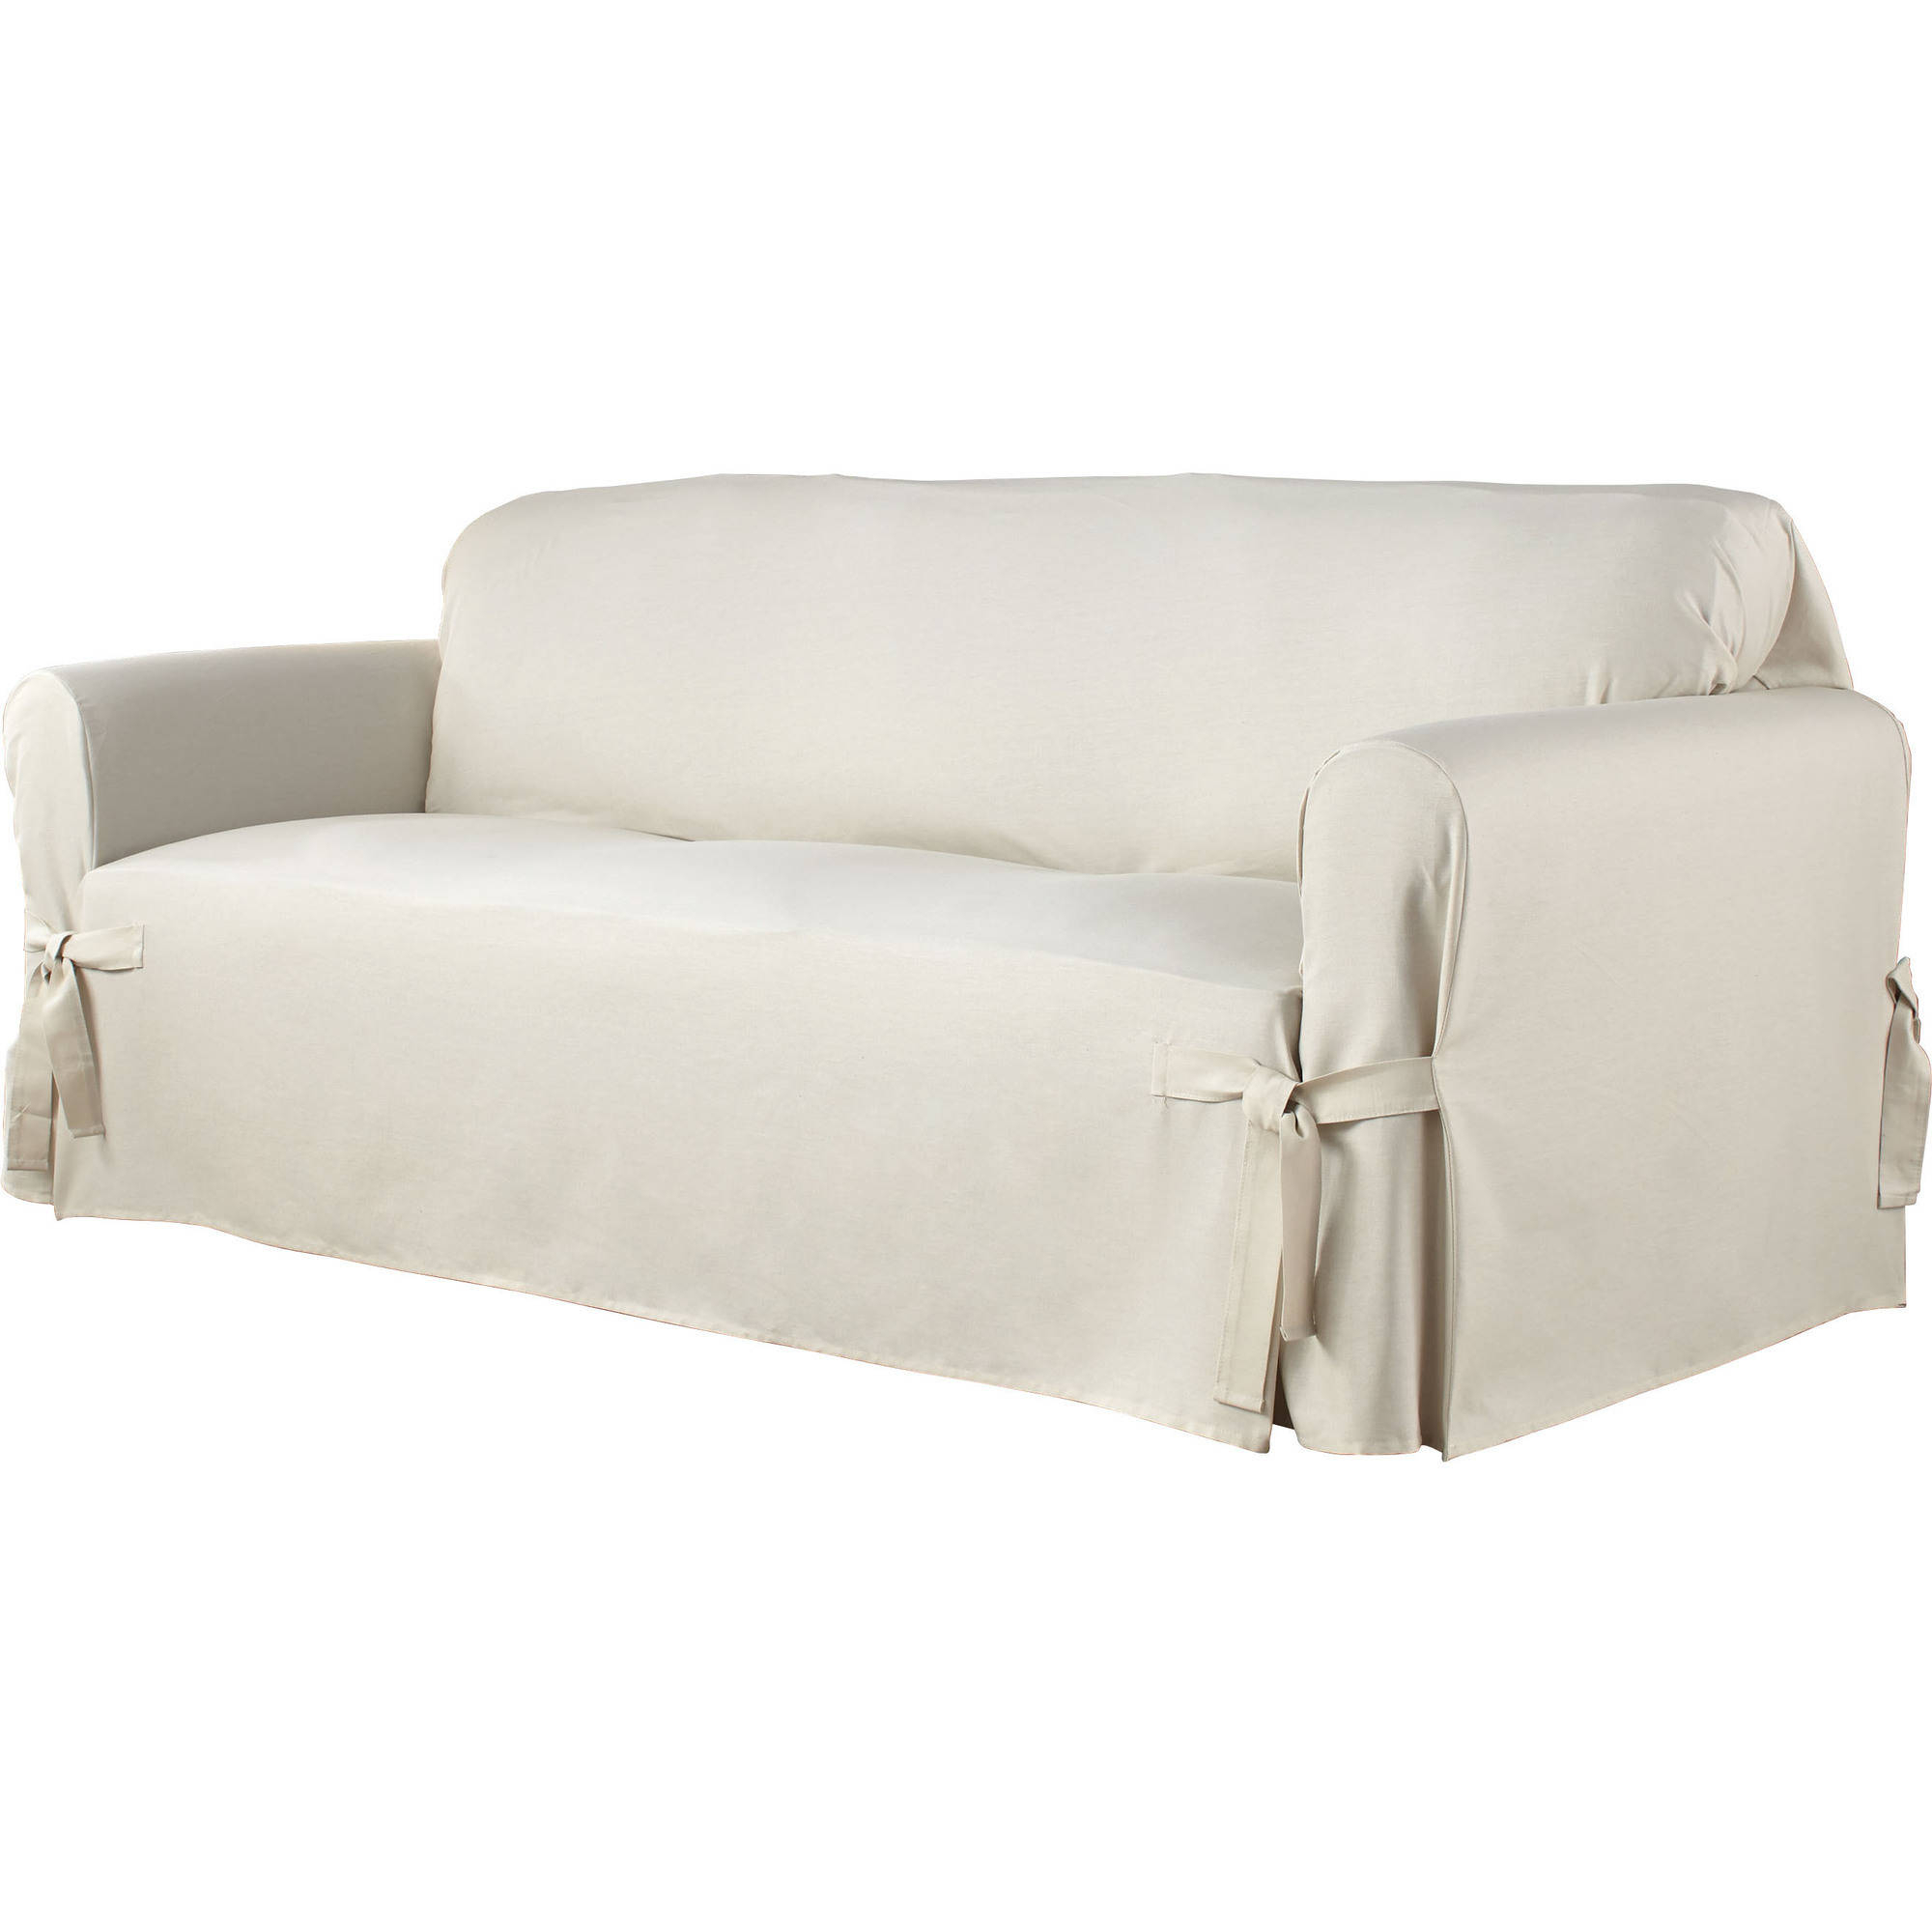 Famous Serta Relaxed Fit Duck Furniture Slipcover, Sofa 1 Piece Box Cushion Pertaining To Slipcovers For Chairs And Sofas (View 2 of 20)